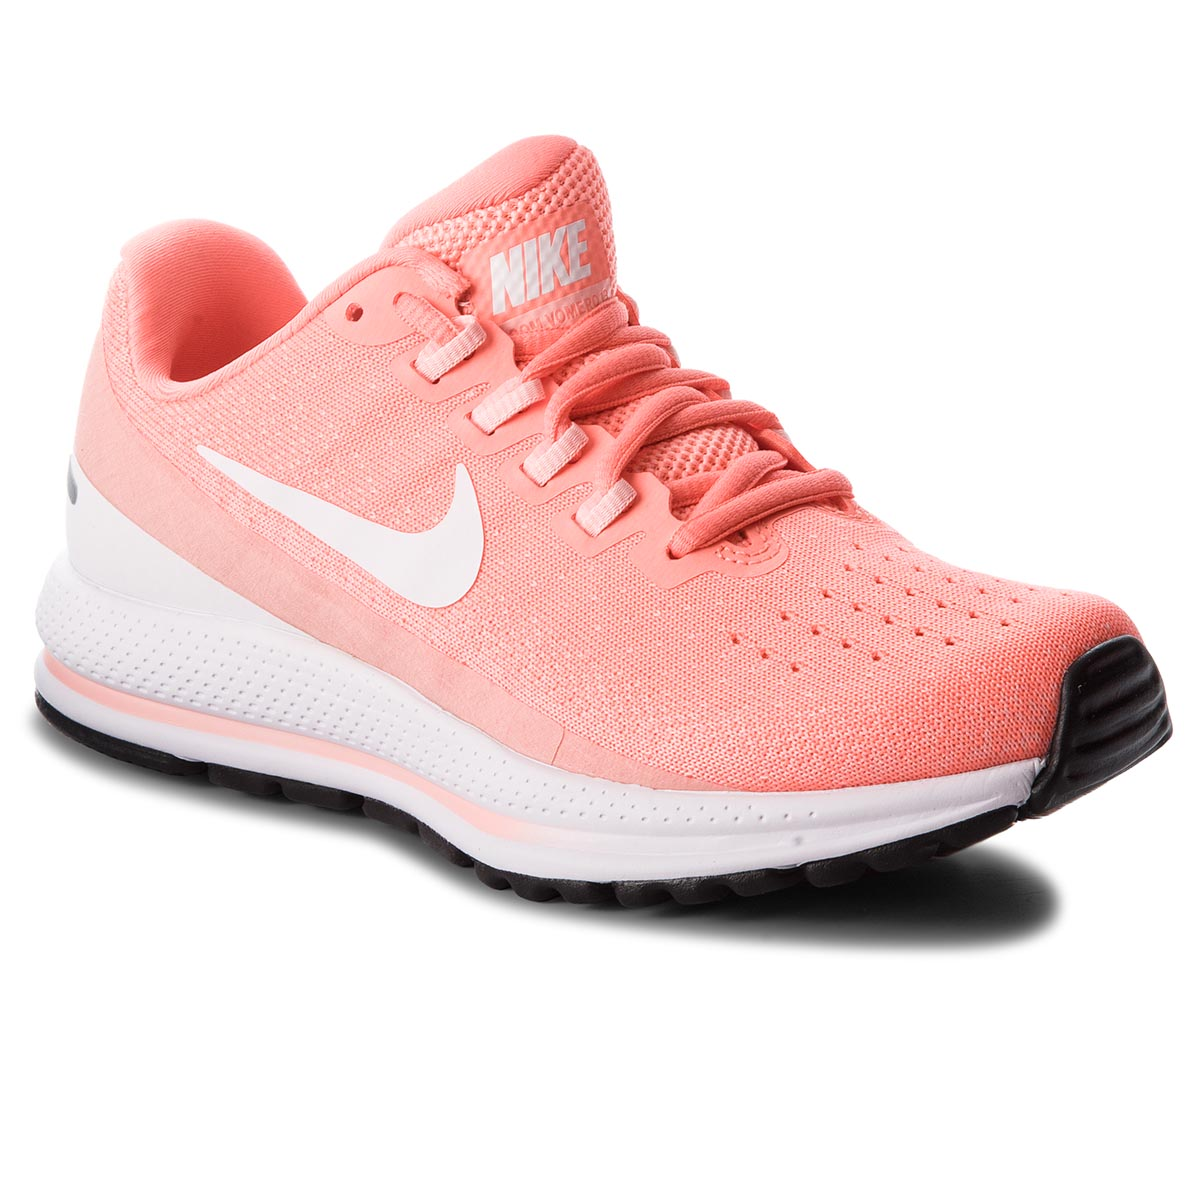 Buty NIKE - Air Zoom Vomero 13 922909 600 Rose Claire Atomique/Blanc